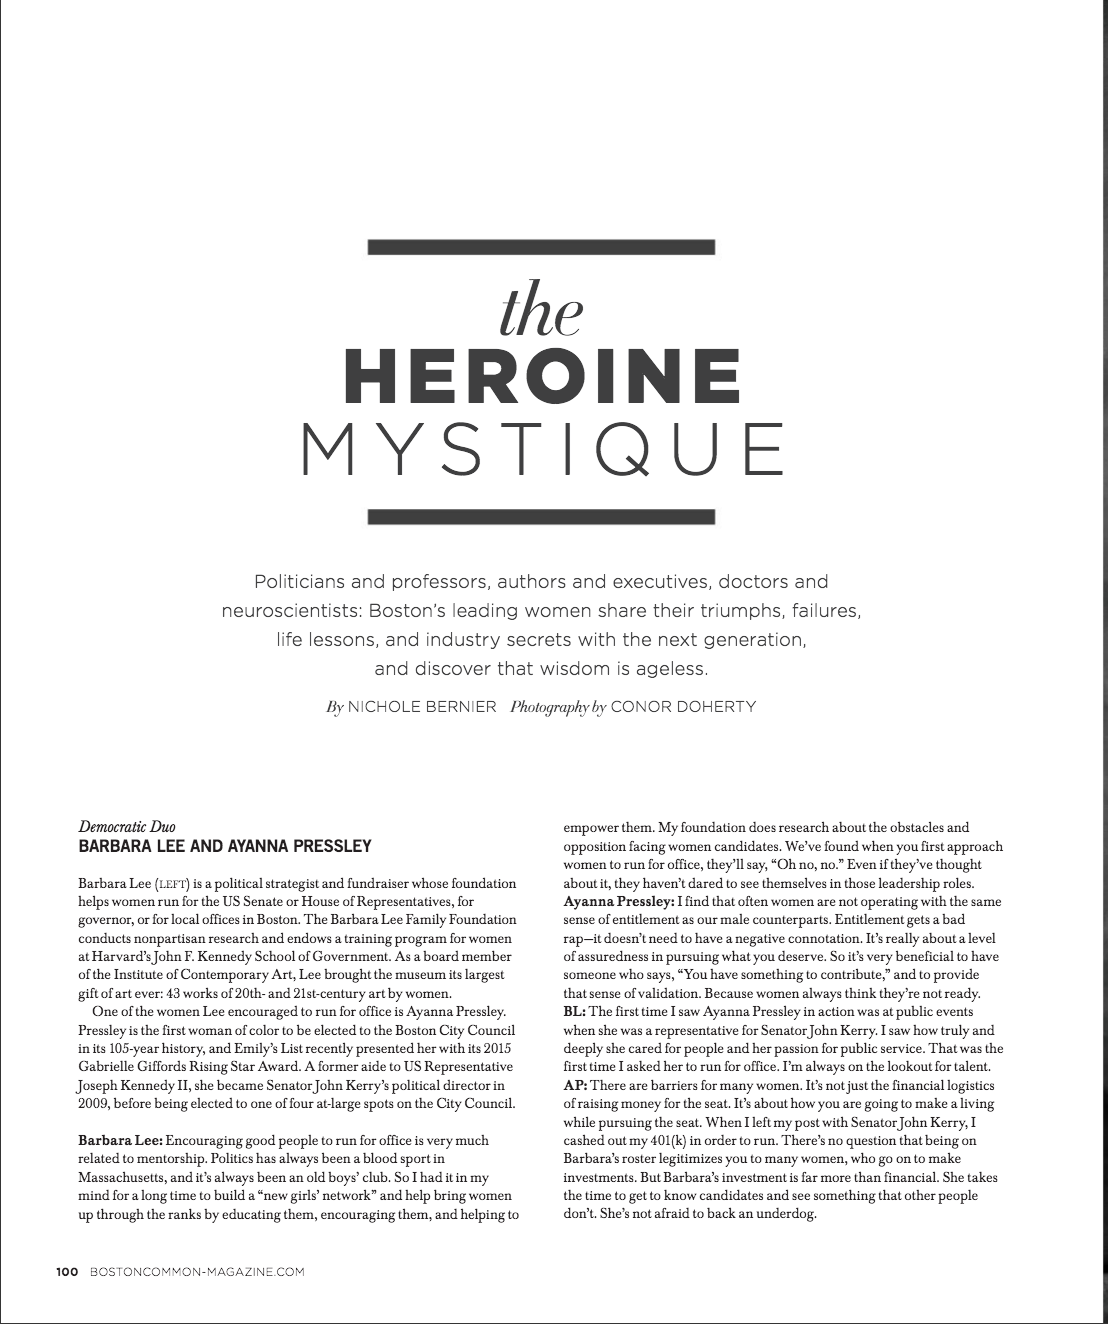 The Heroine Mystique